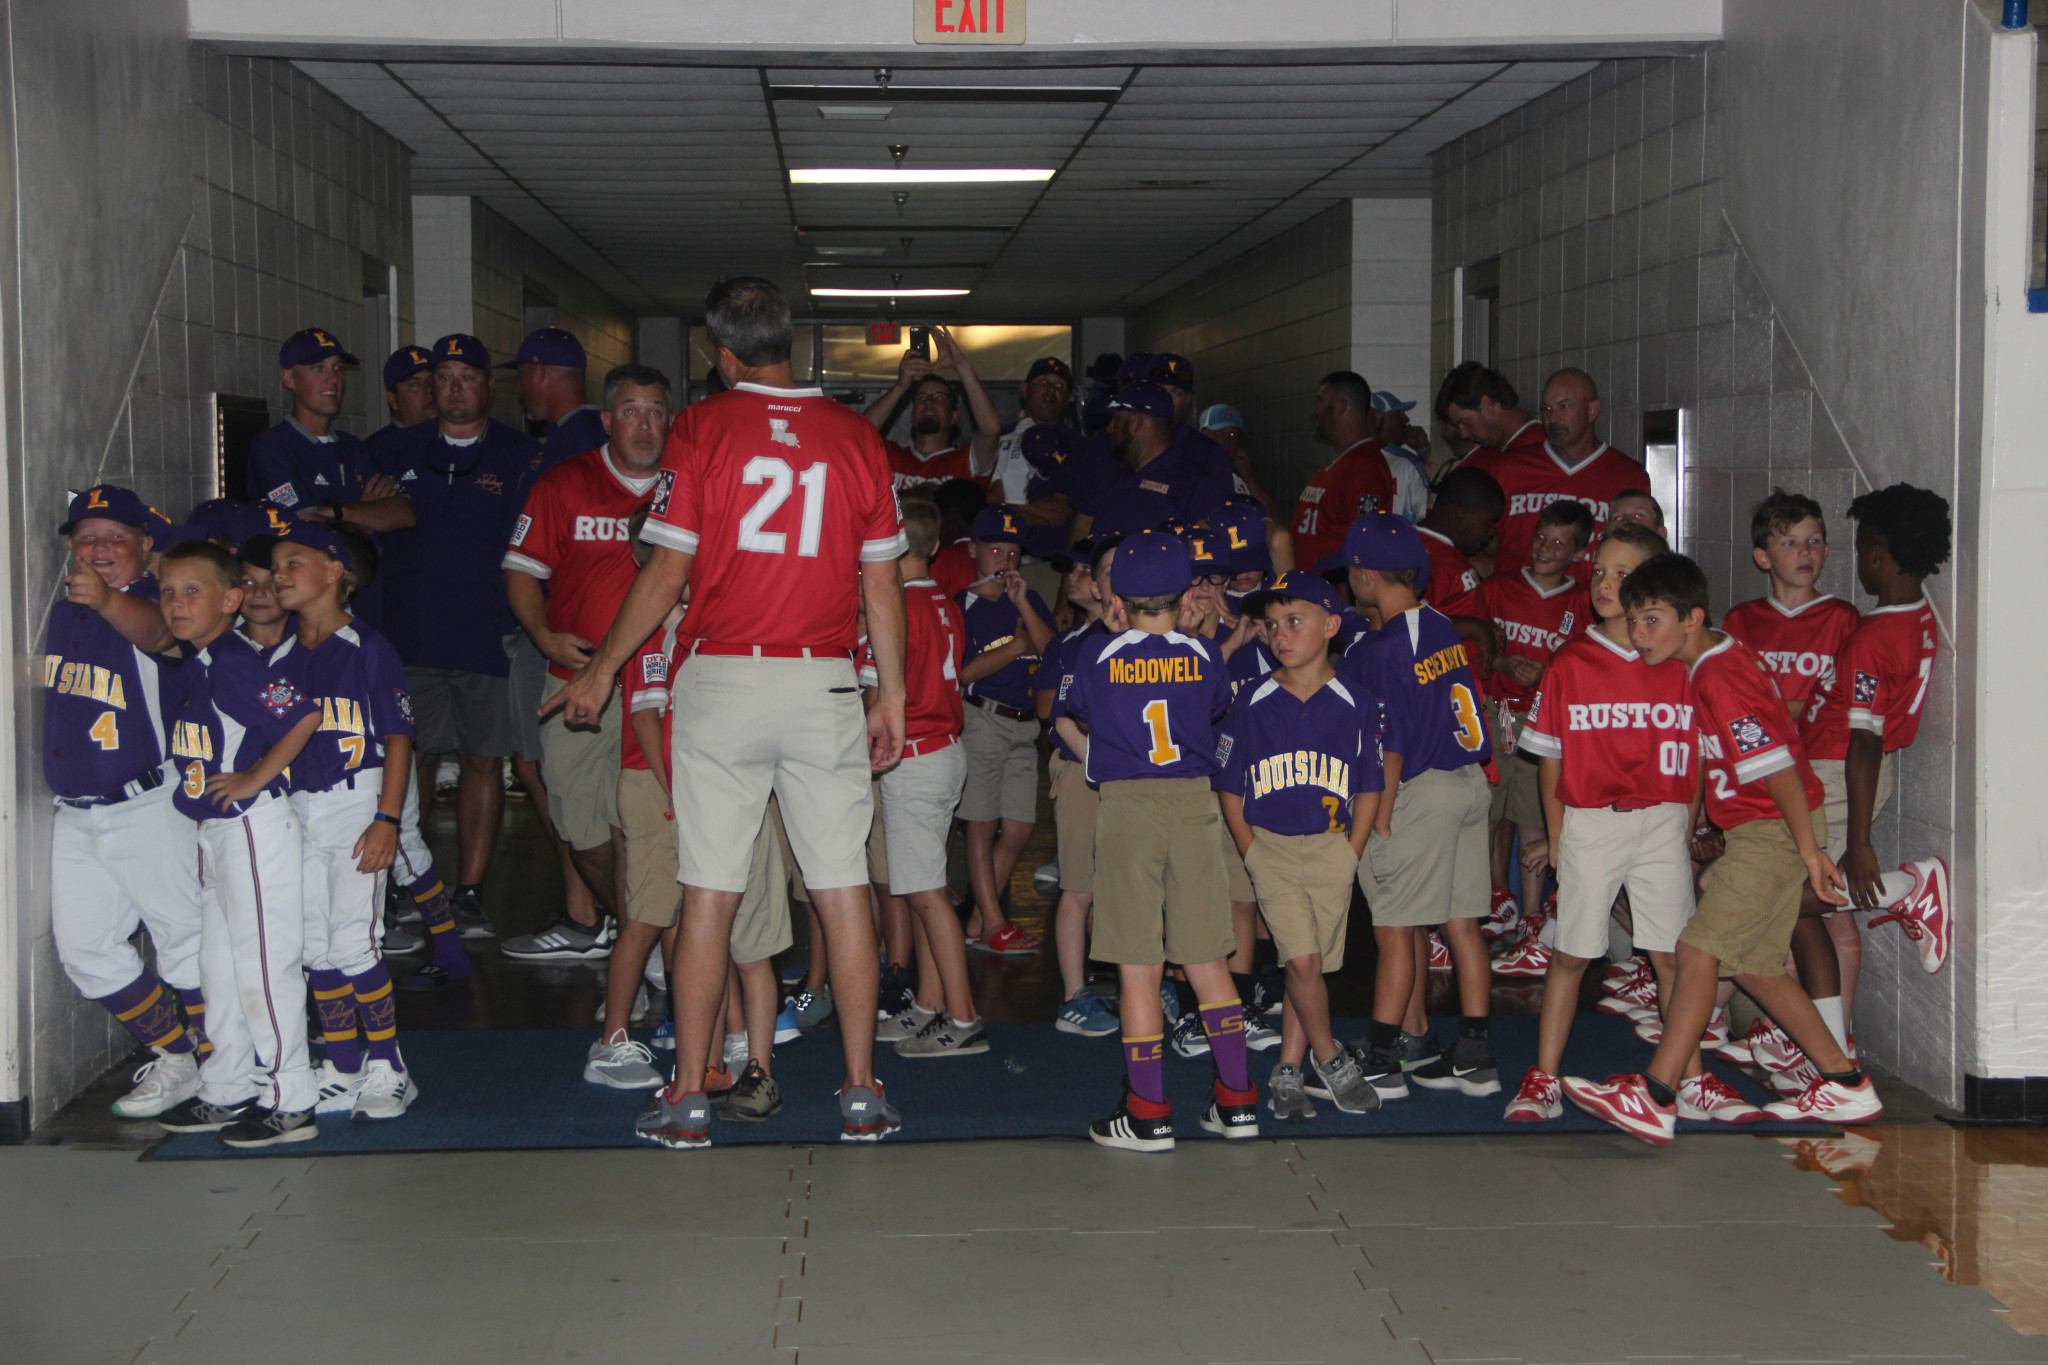 Team Louisiana (wearing purple) and Team Ruston (wearing red) wait for Friday's opening ceremony to begin.